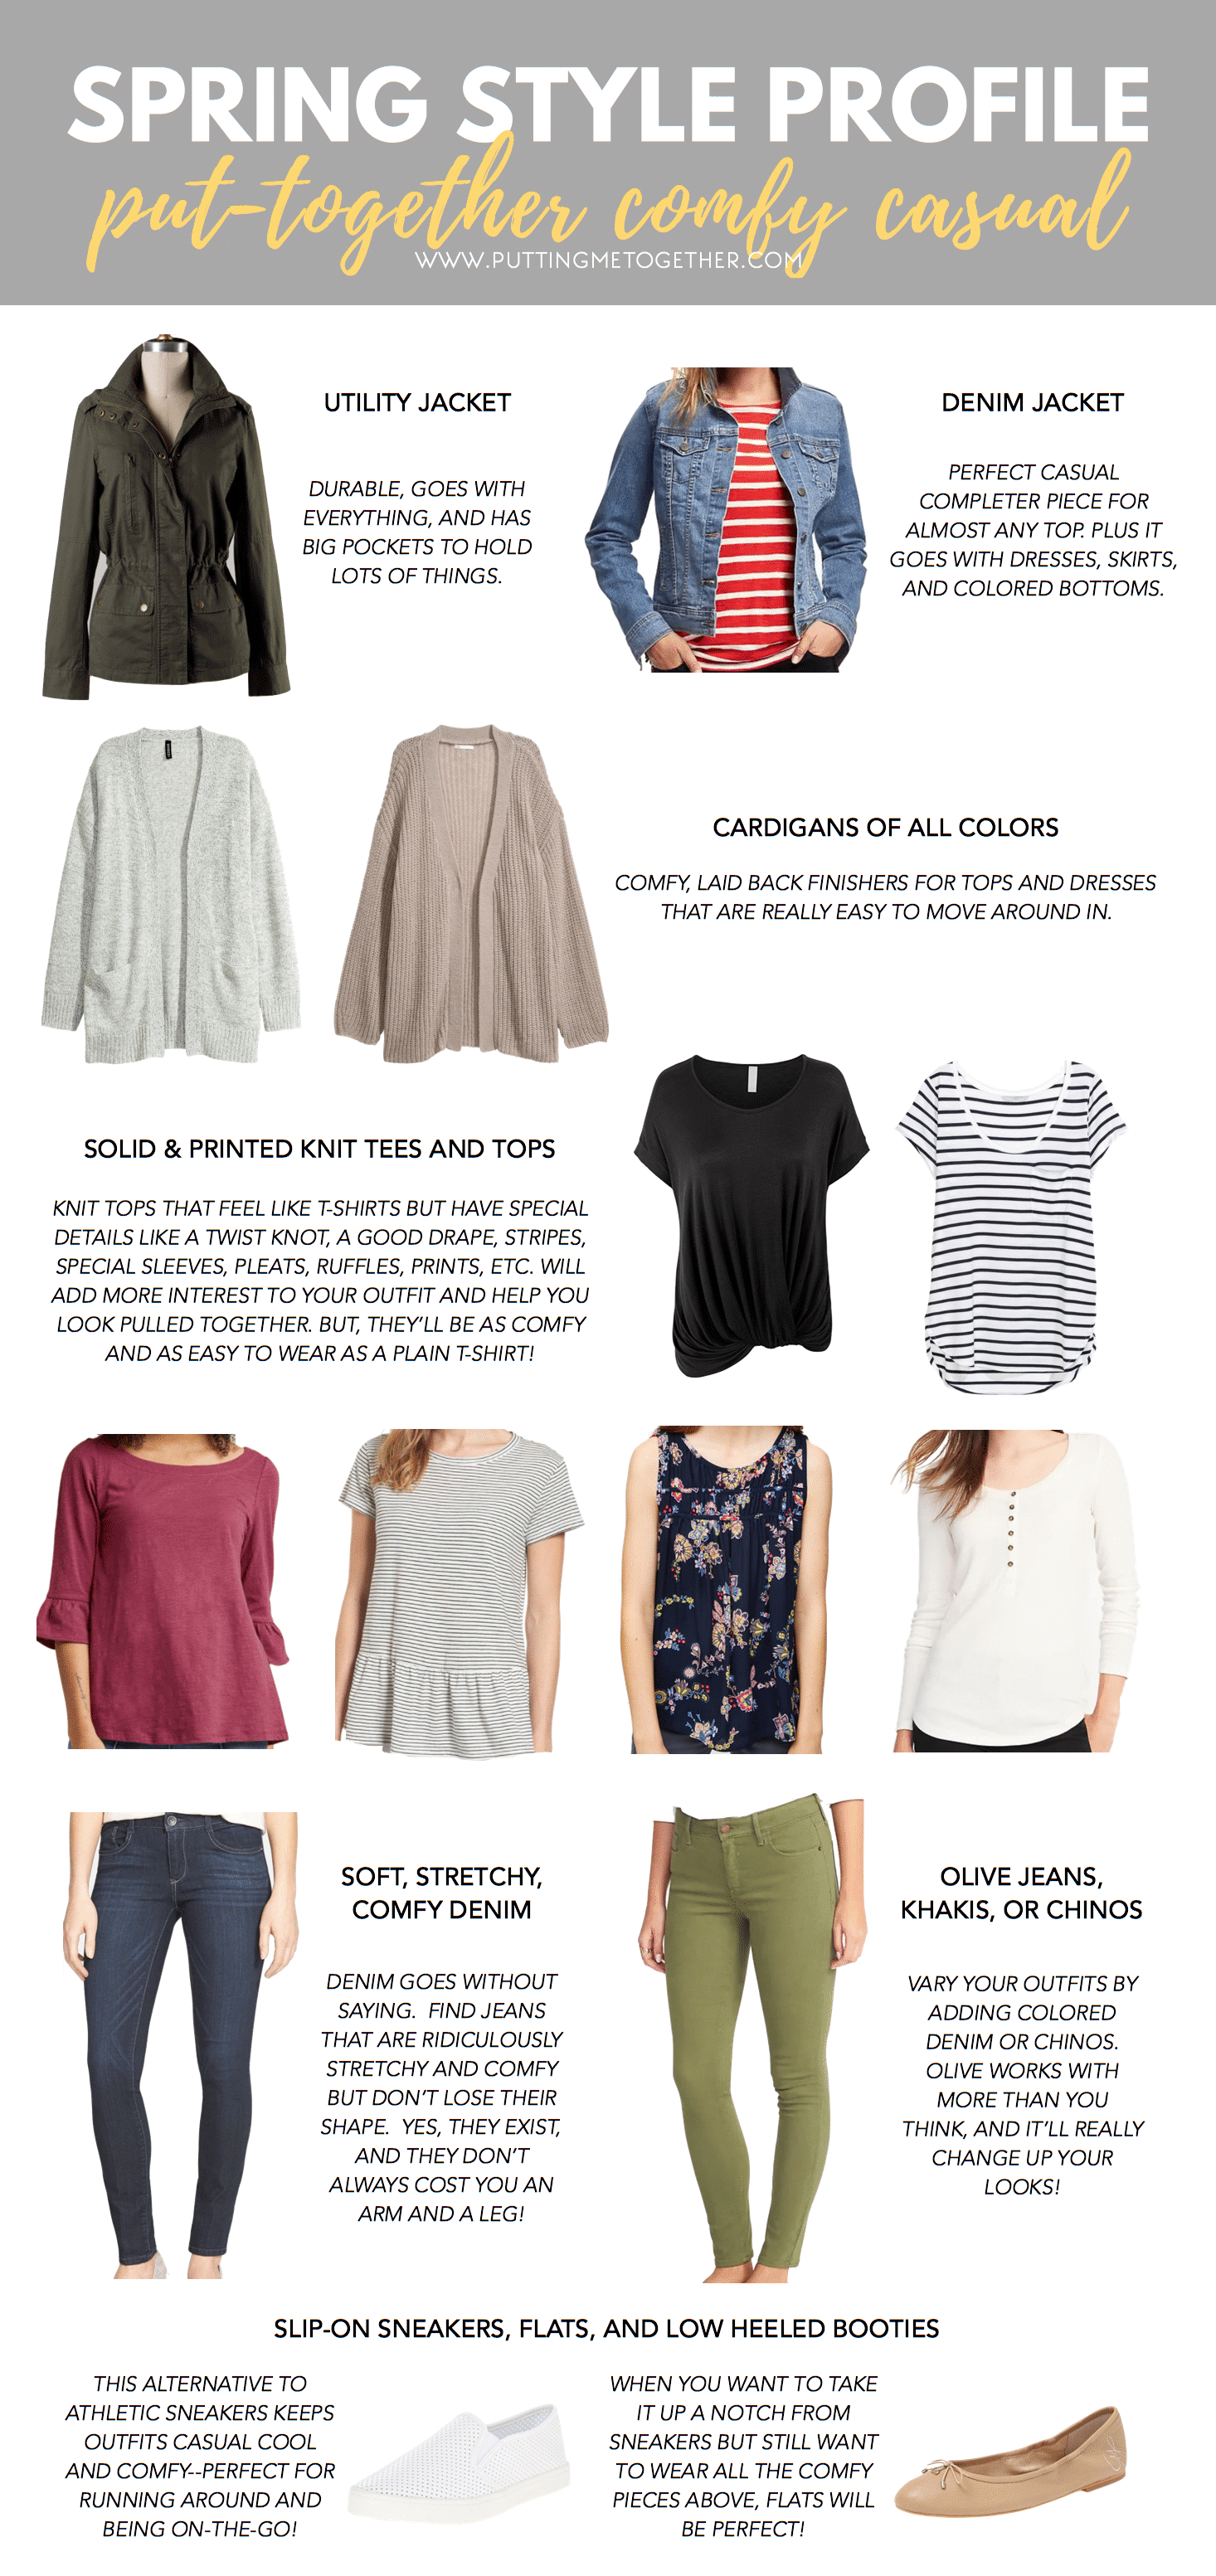 Building Blocks for a Comfy Casual Wardrobe